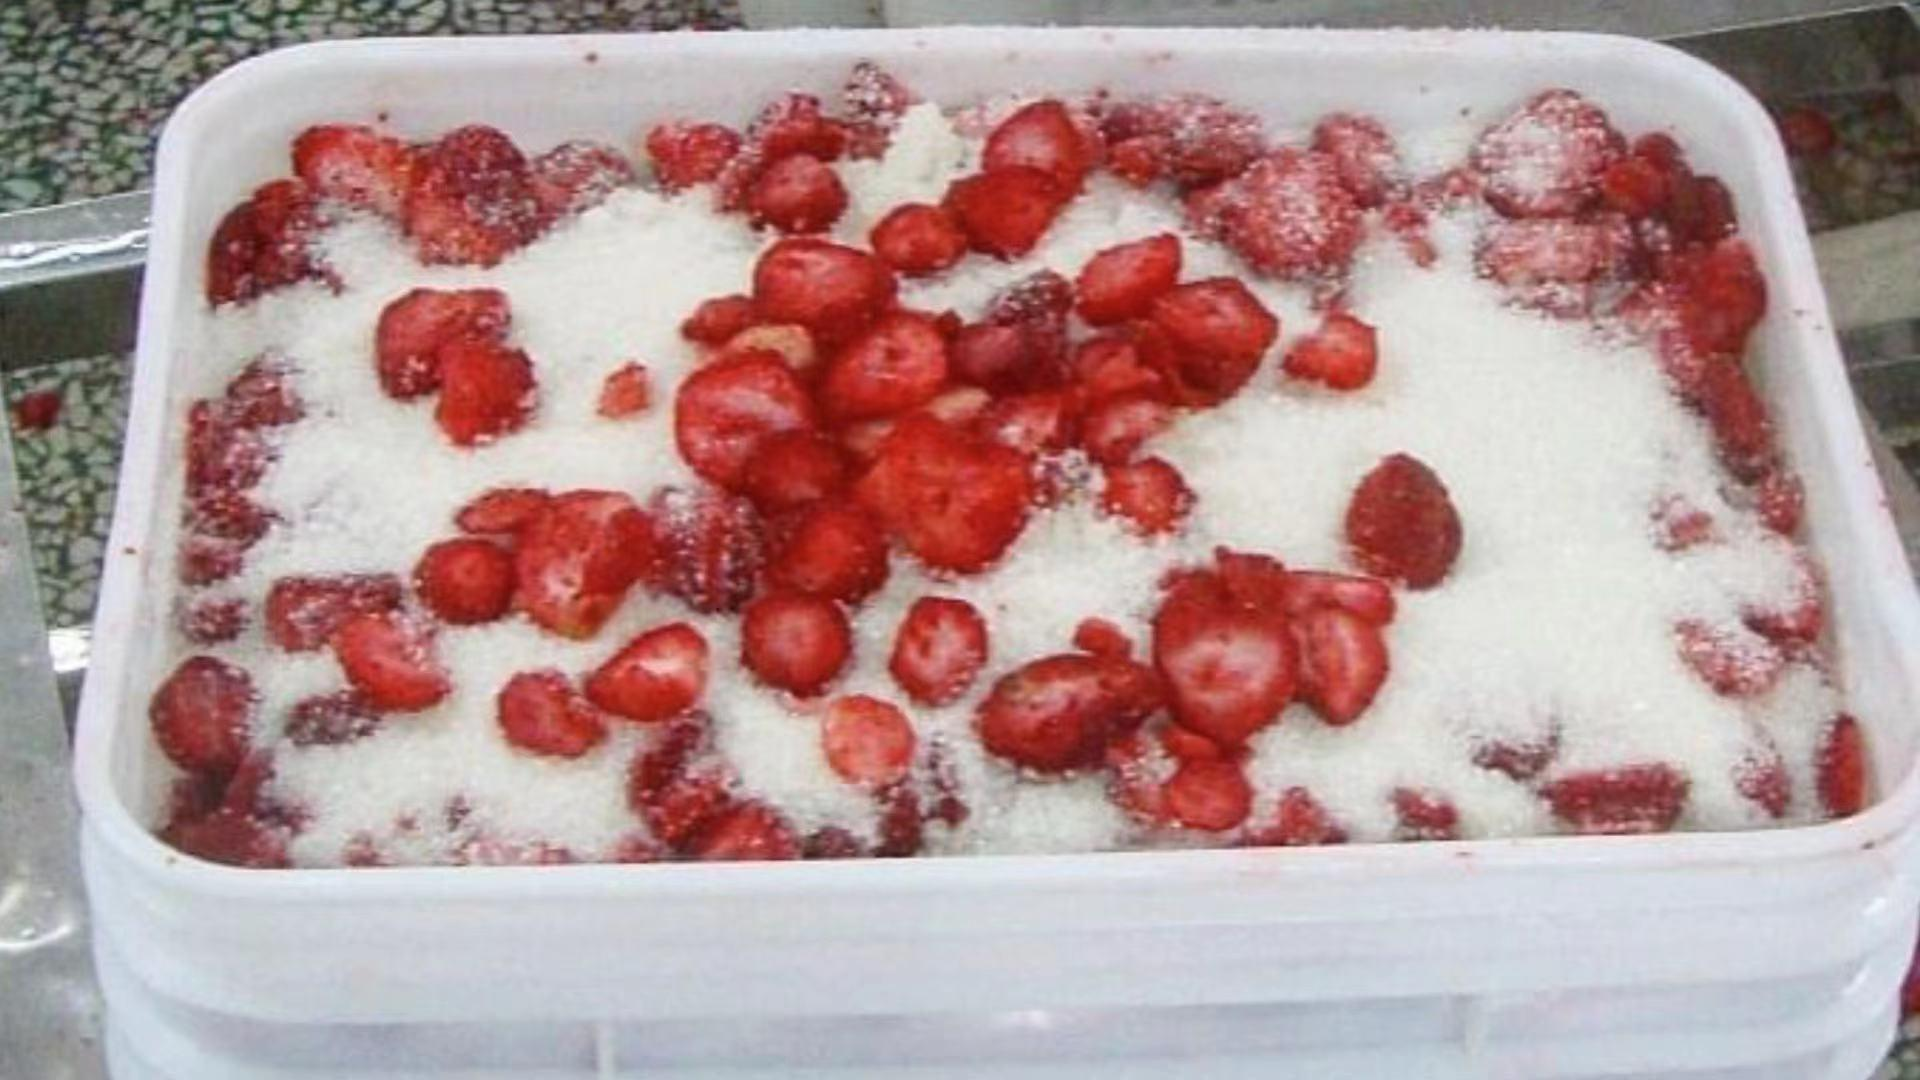 Frozen Strawberries in Sugar ,Frozen Strawberries with Sugar,slices/wholes